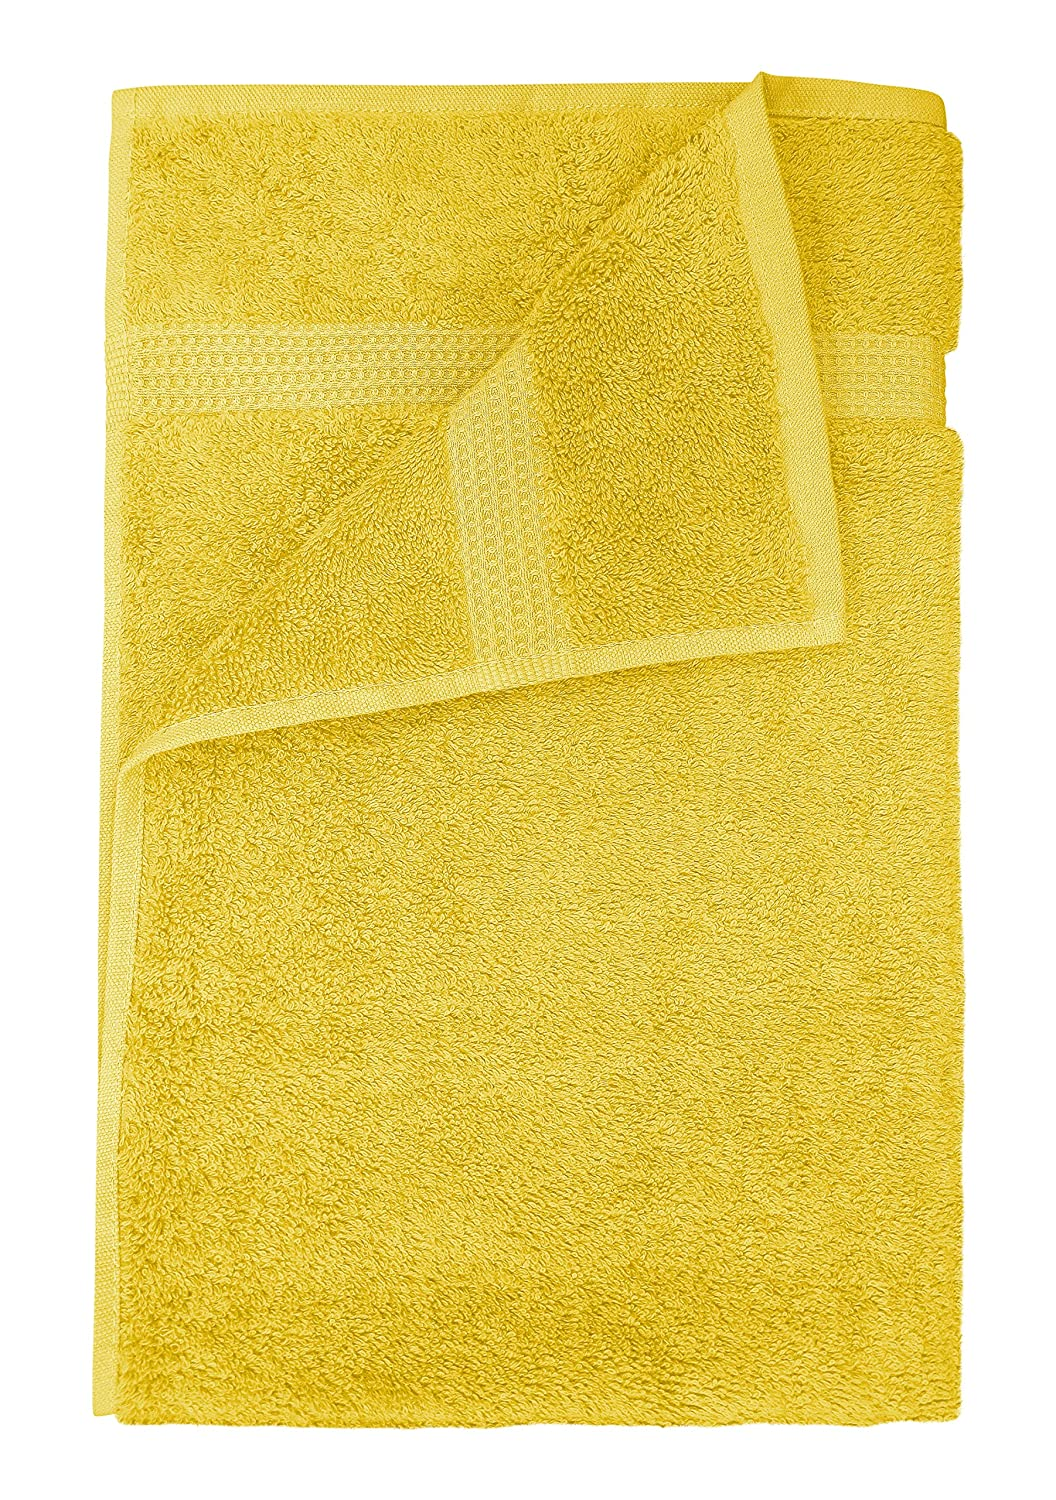 Bbank 100% Pure Egyptian Cotton Towels Super Absorbent 600gsm (Cream, 30x30cm Face) Generic